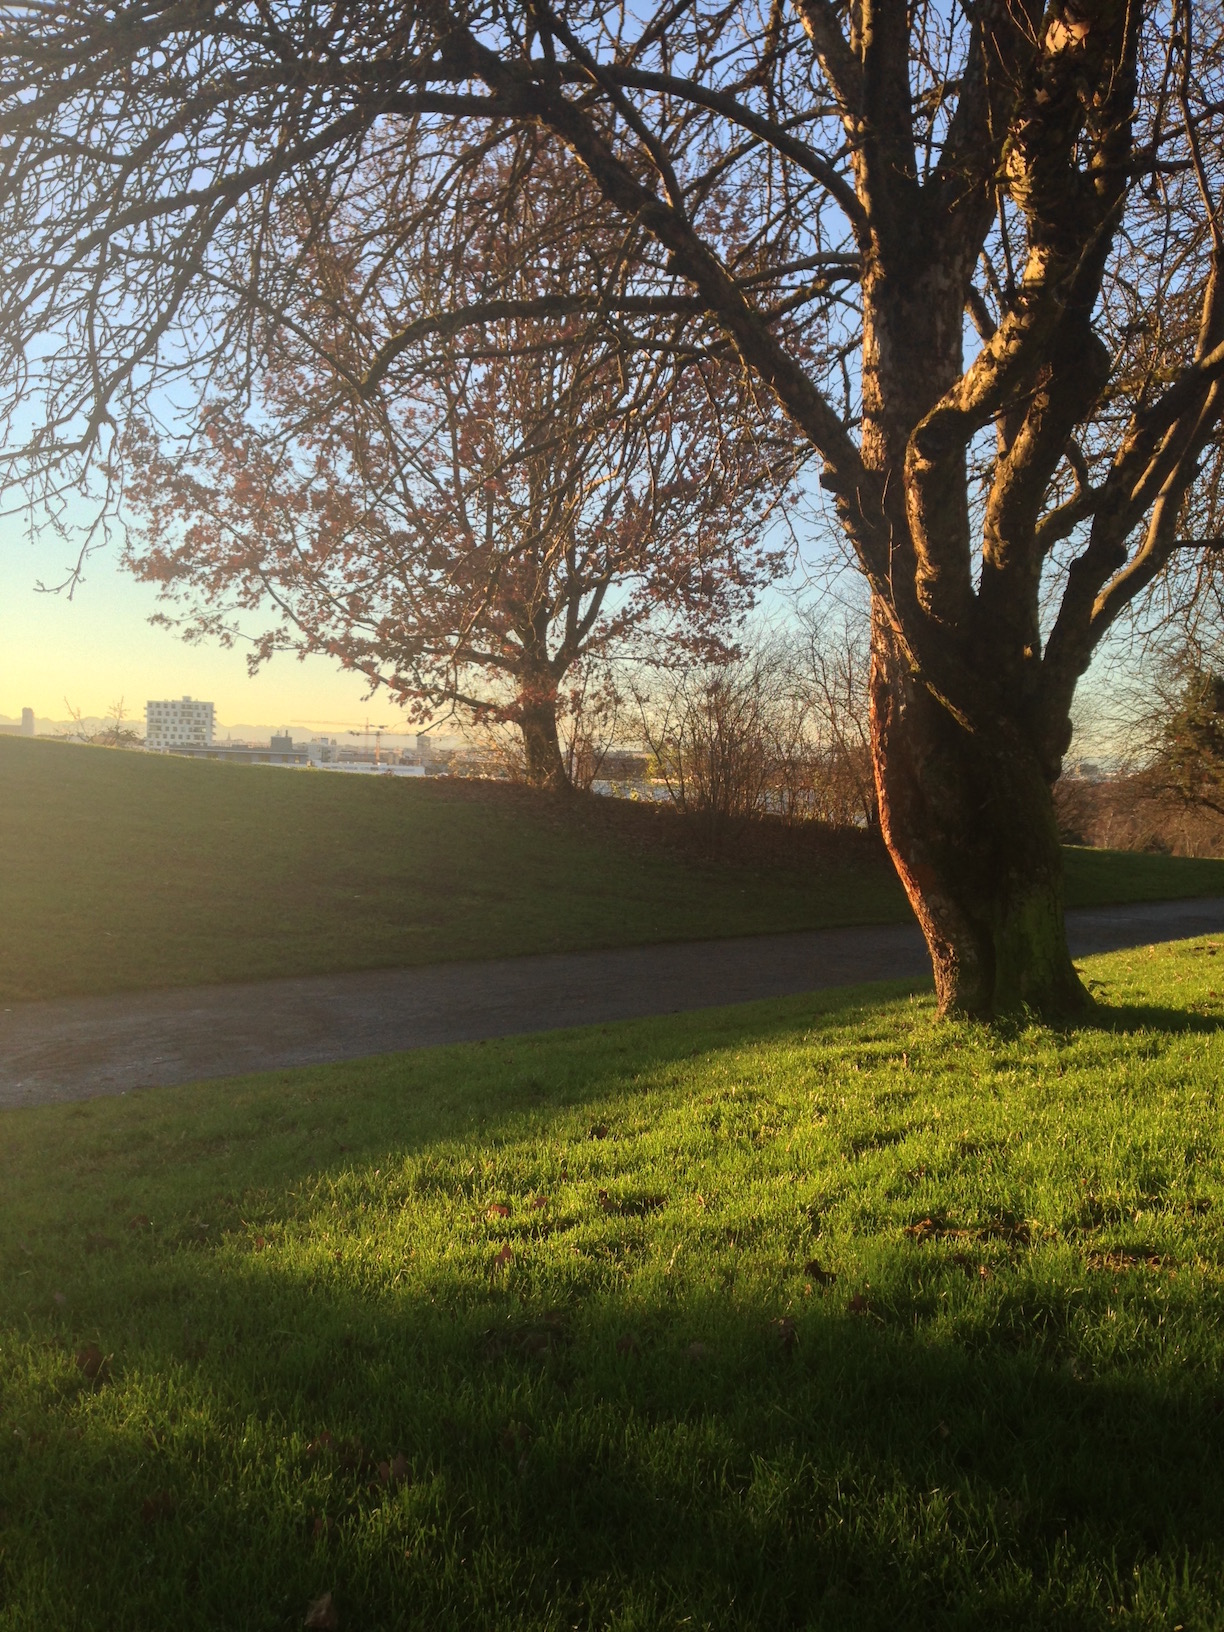 Tree and the city in background, Olympiaberg